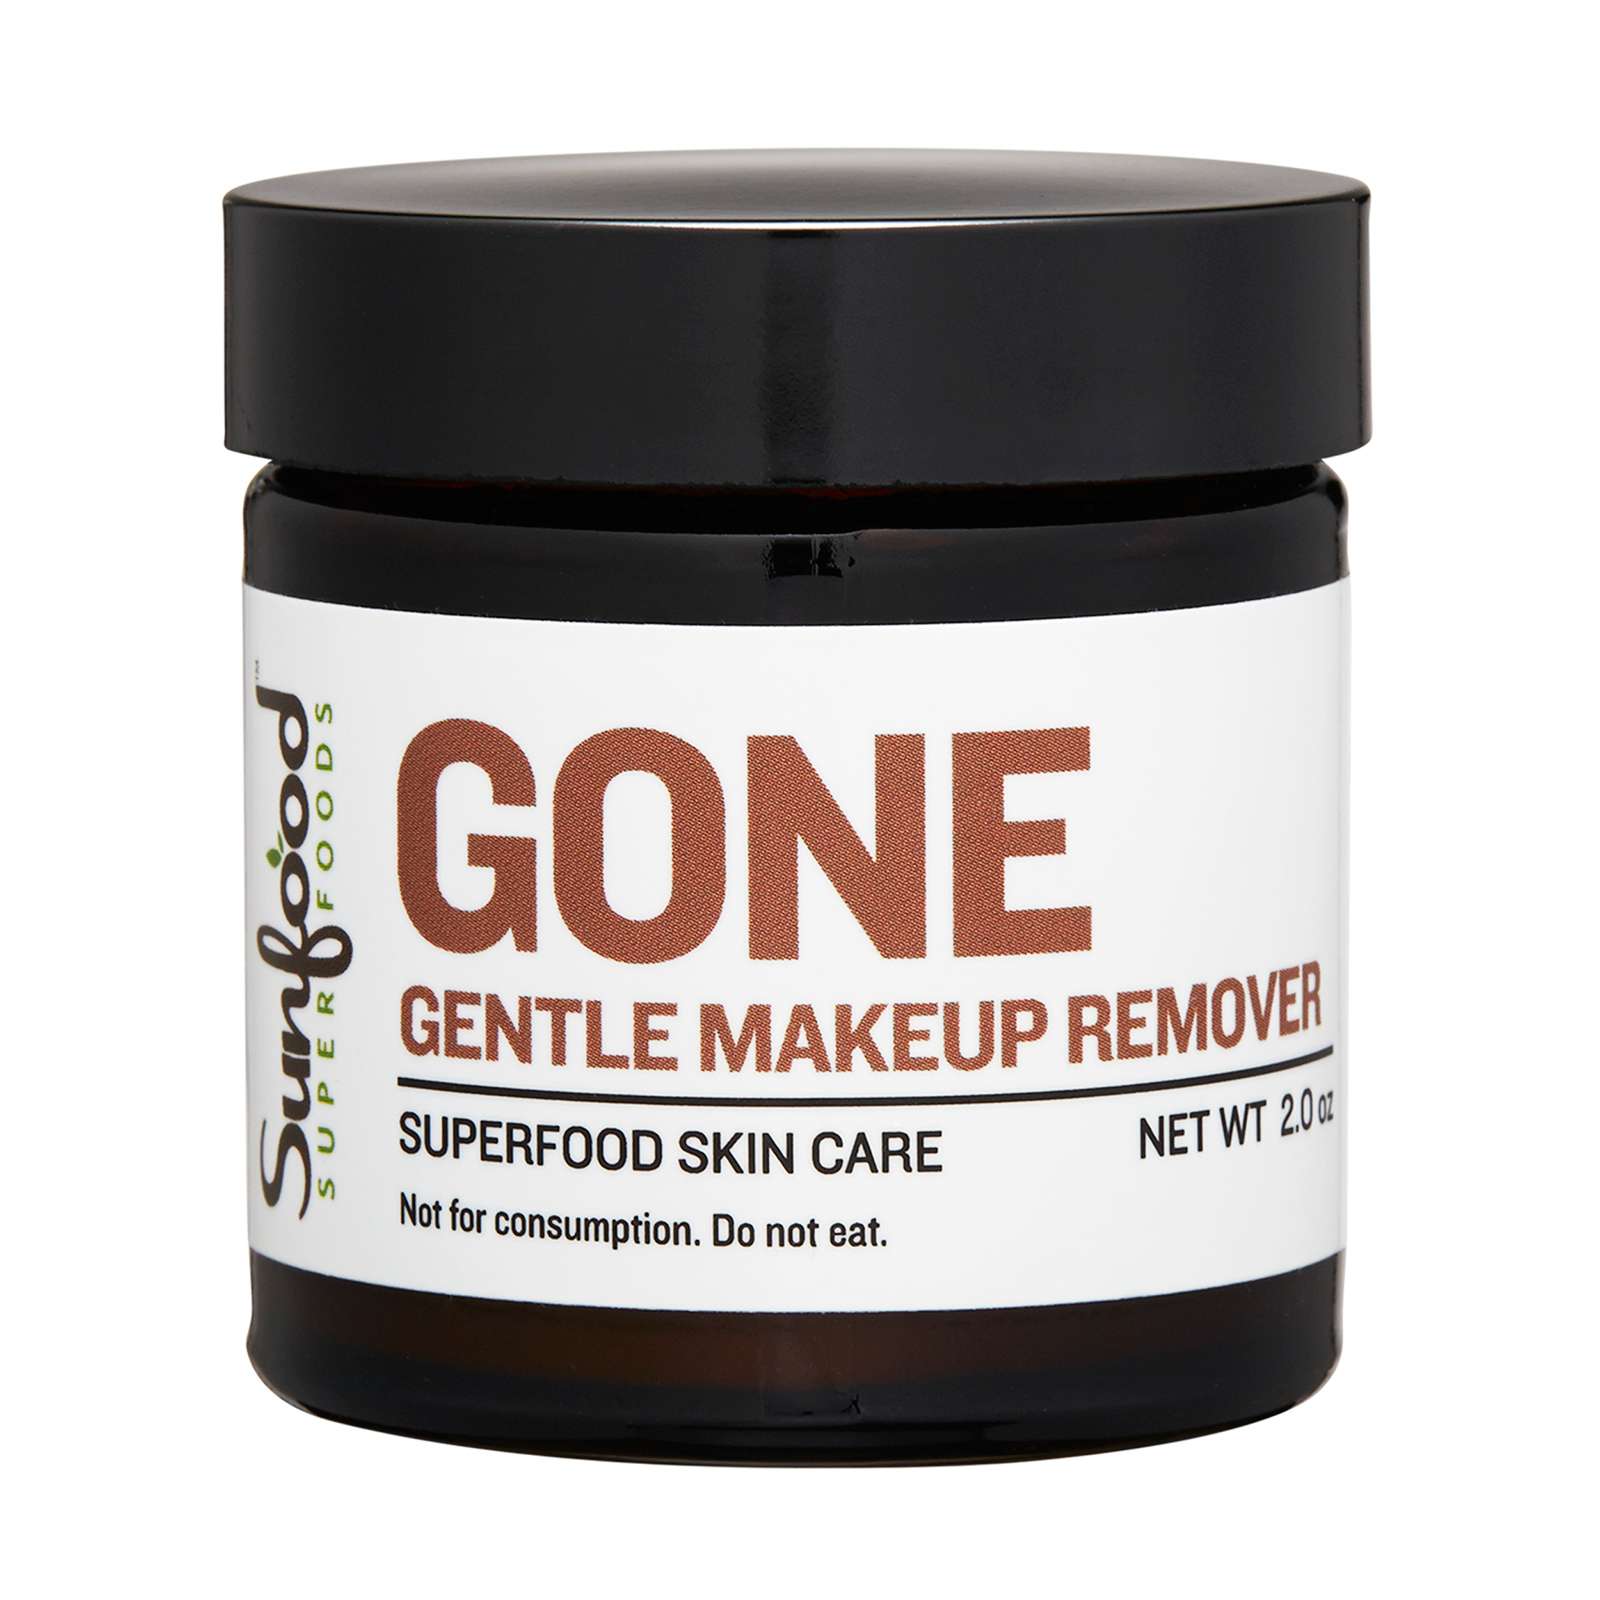 Sunfood GONE Gentle Makeup Remover 2oz,